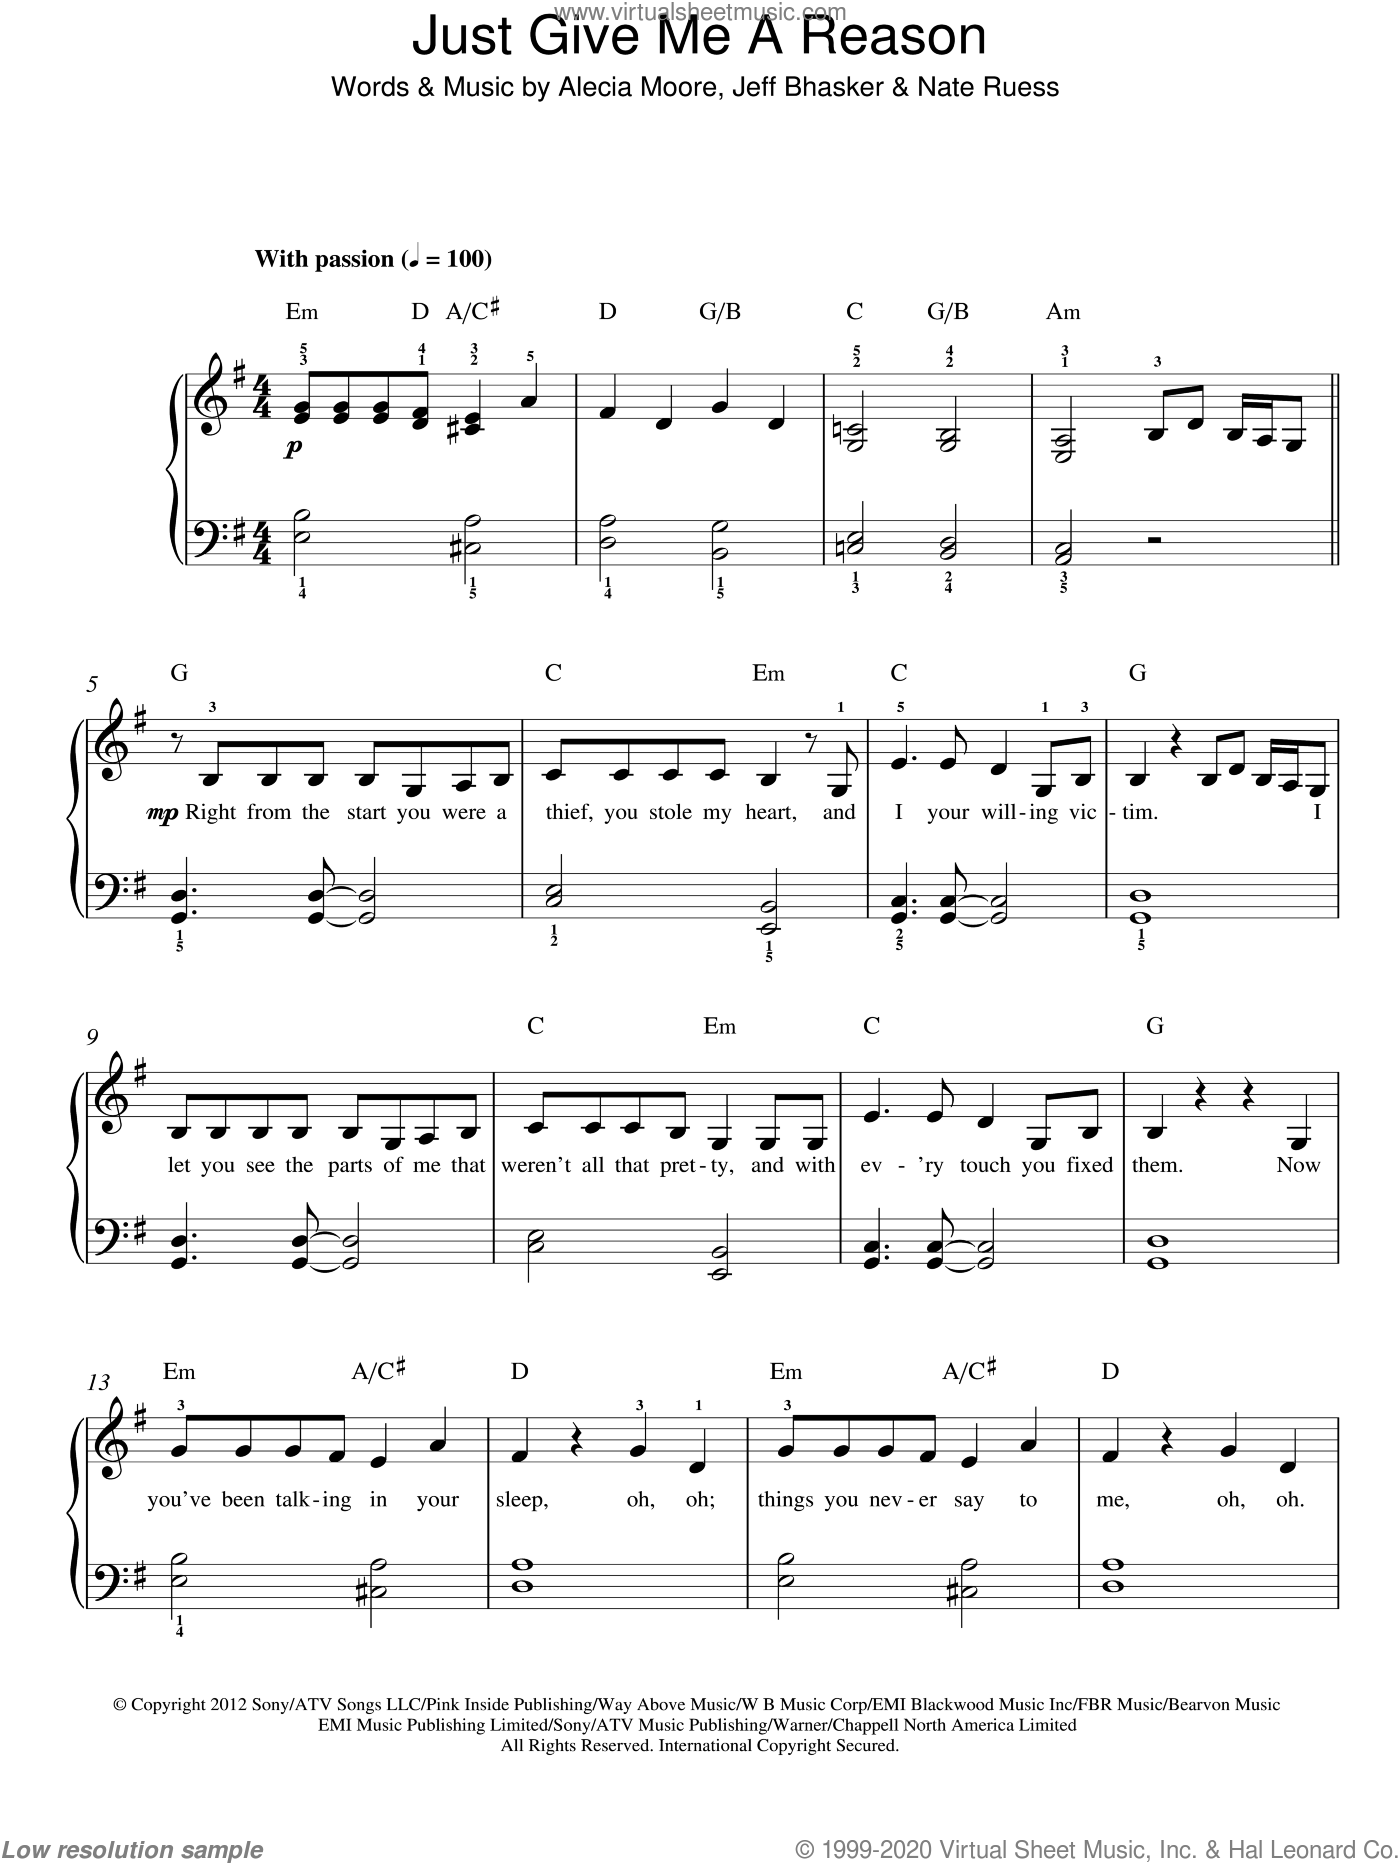 Just Give Me A Reason sheet music for piano solo by Alecia Moore, Jeff Bhasker and Nate Ruess. Score Image Preview.